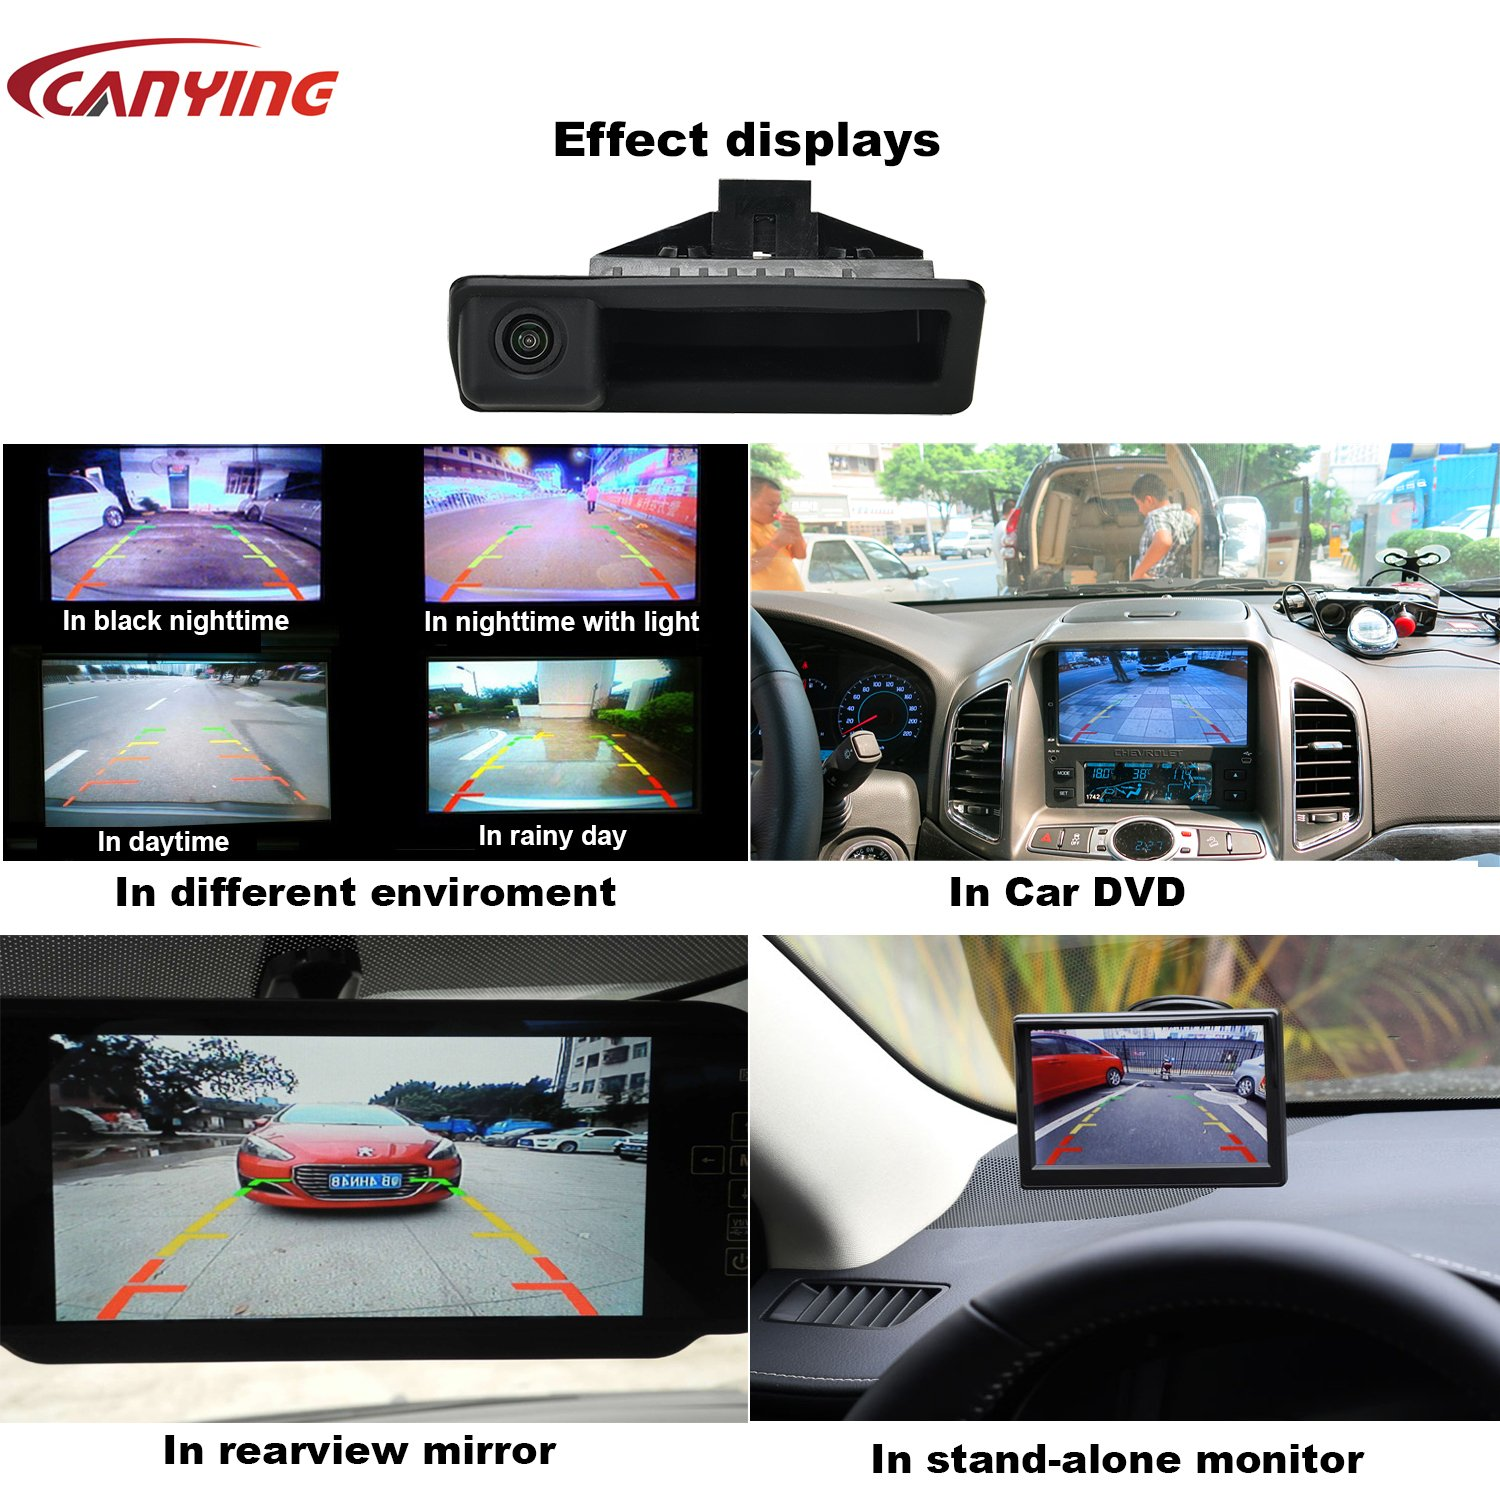 Canying Car Rear View Reverse Back Trunk Handle Camera Special for BMW E60 E61 E70 E71 E72 E82 E88 E84 E90 E91 E92 E93 X1 X5